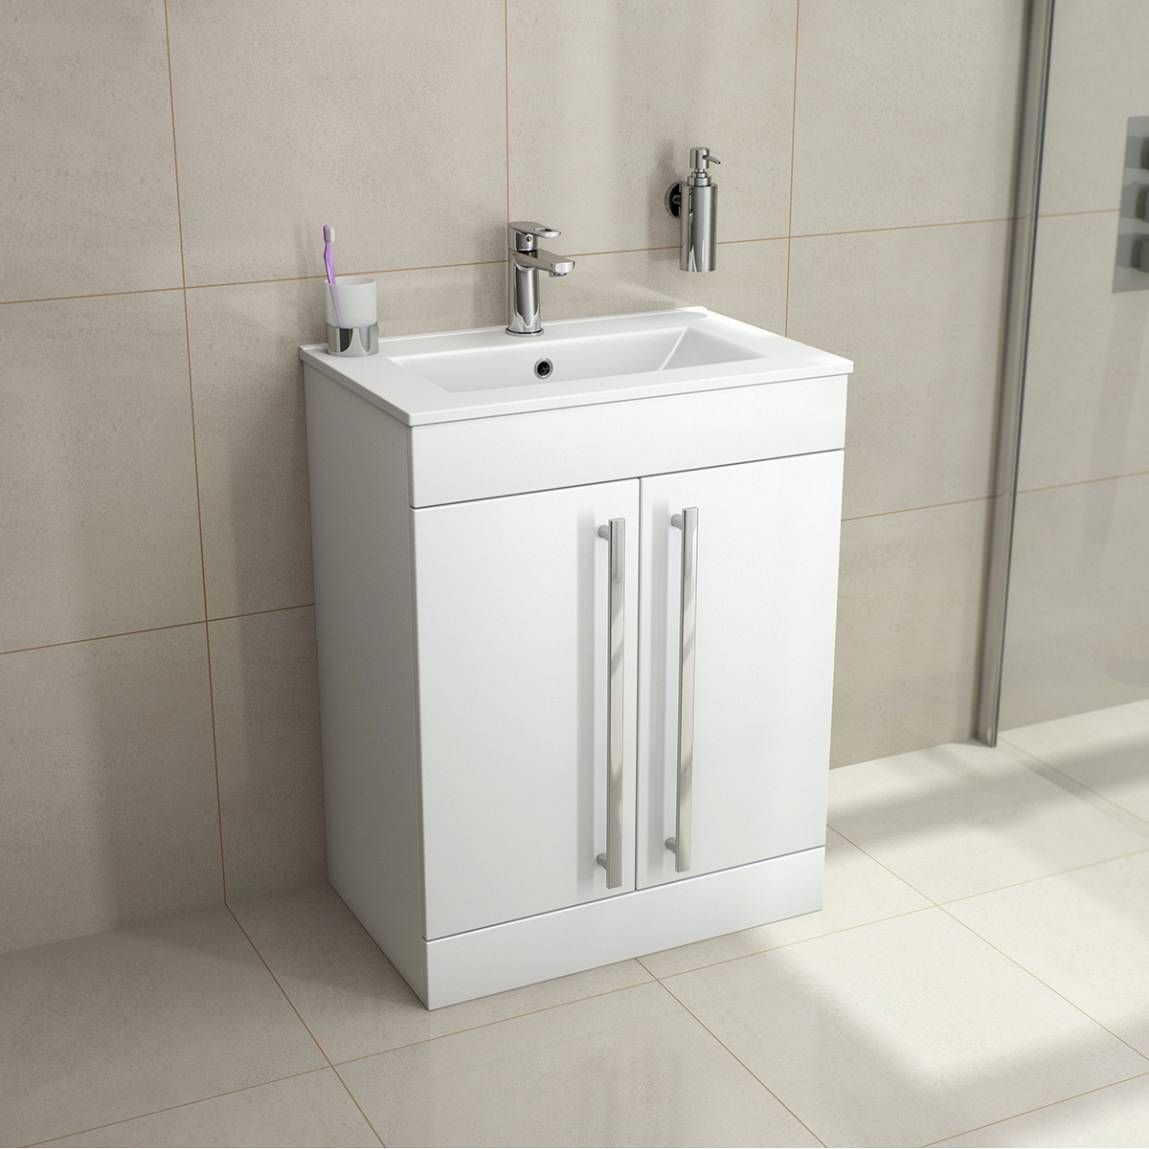 Bathroom Accessories Victoria Plumb odessa+white+floor+mounted+600+door+unit+&+basin | shuva